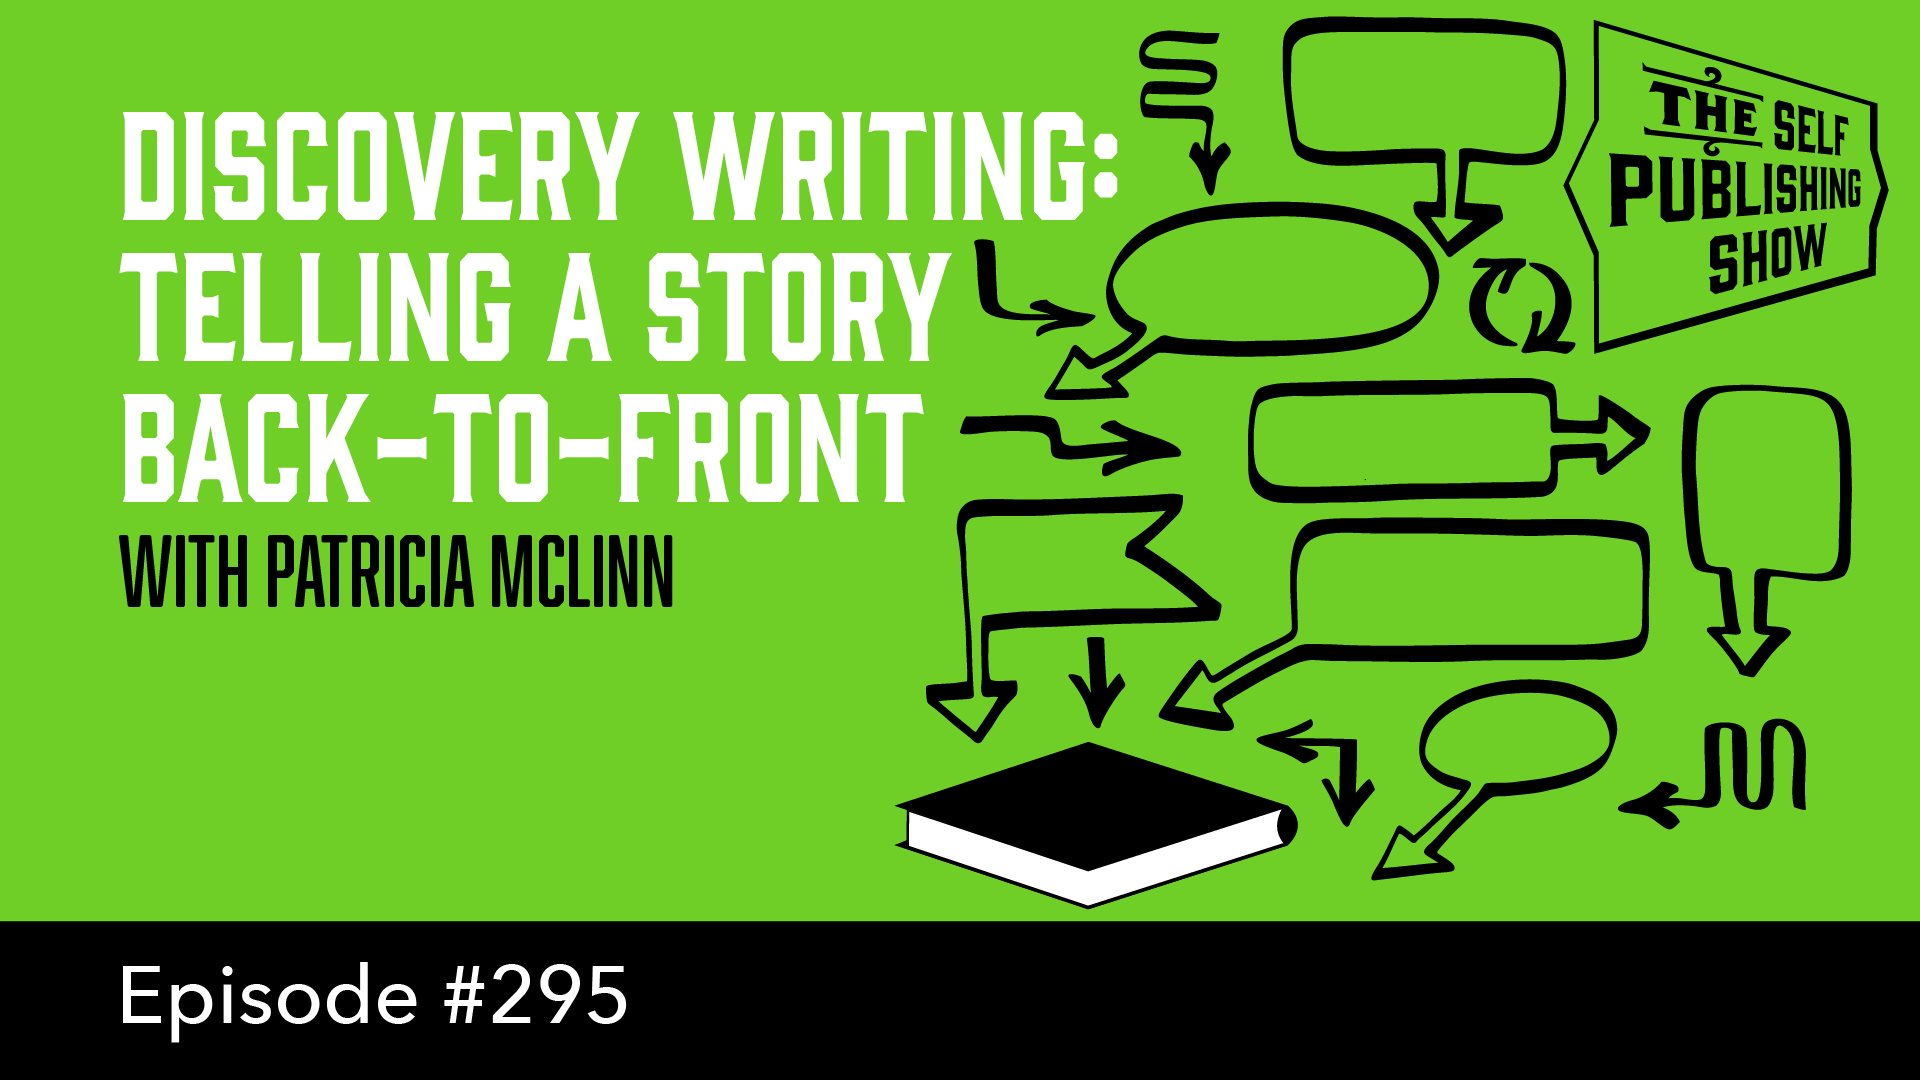 SPS-295: Discovery Writing: Telling a Story Back-to-Front – with Patricia McLinn